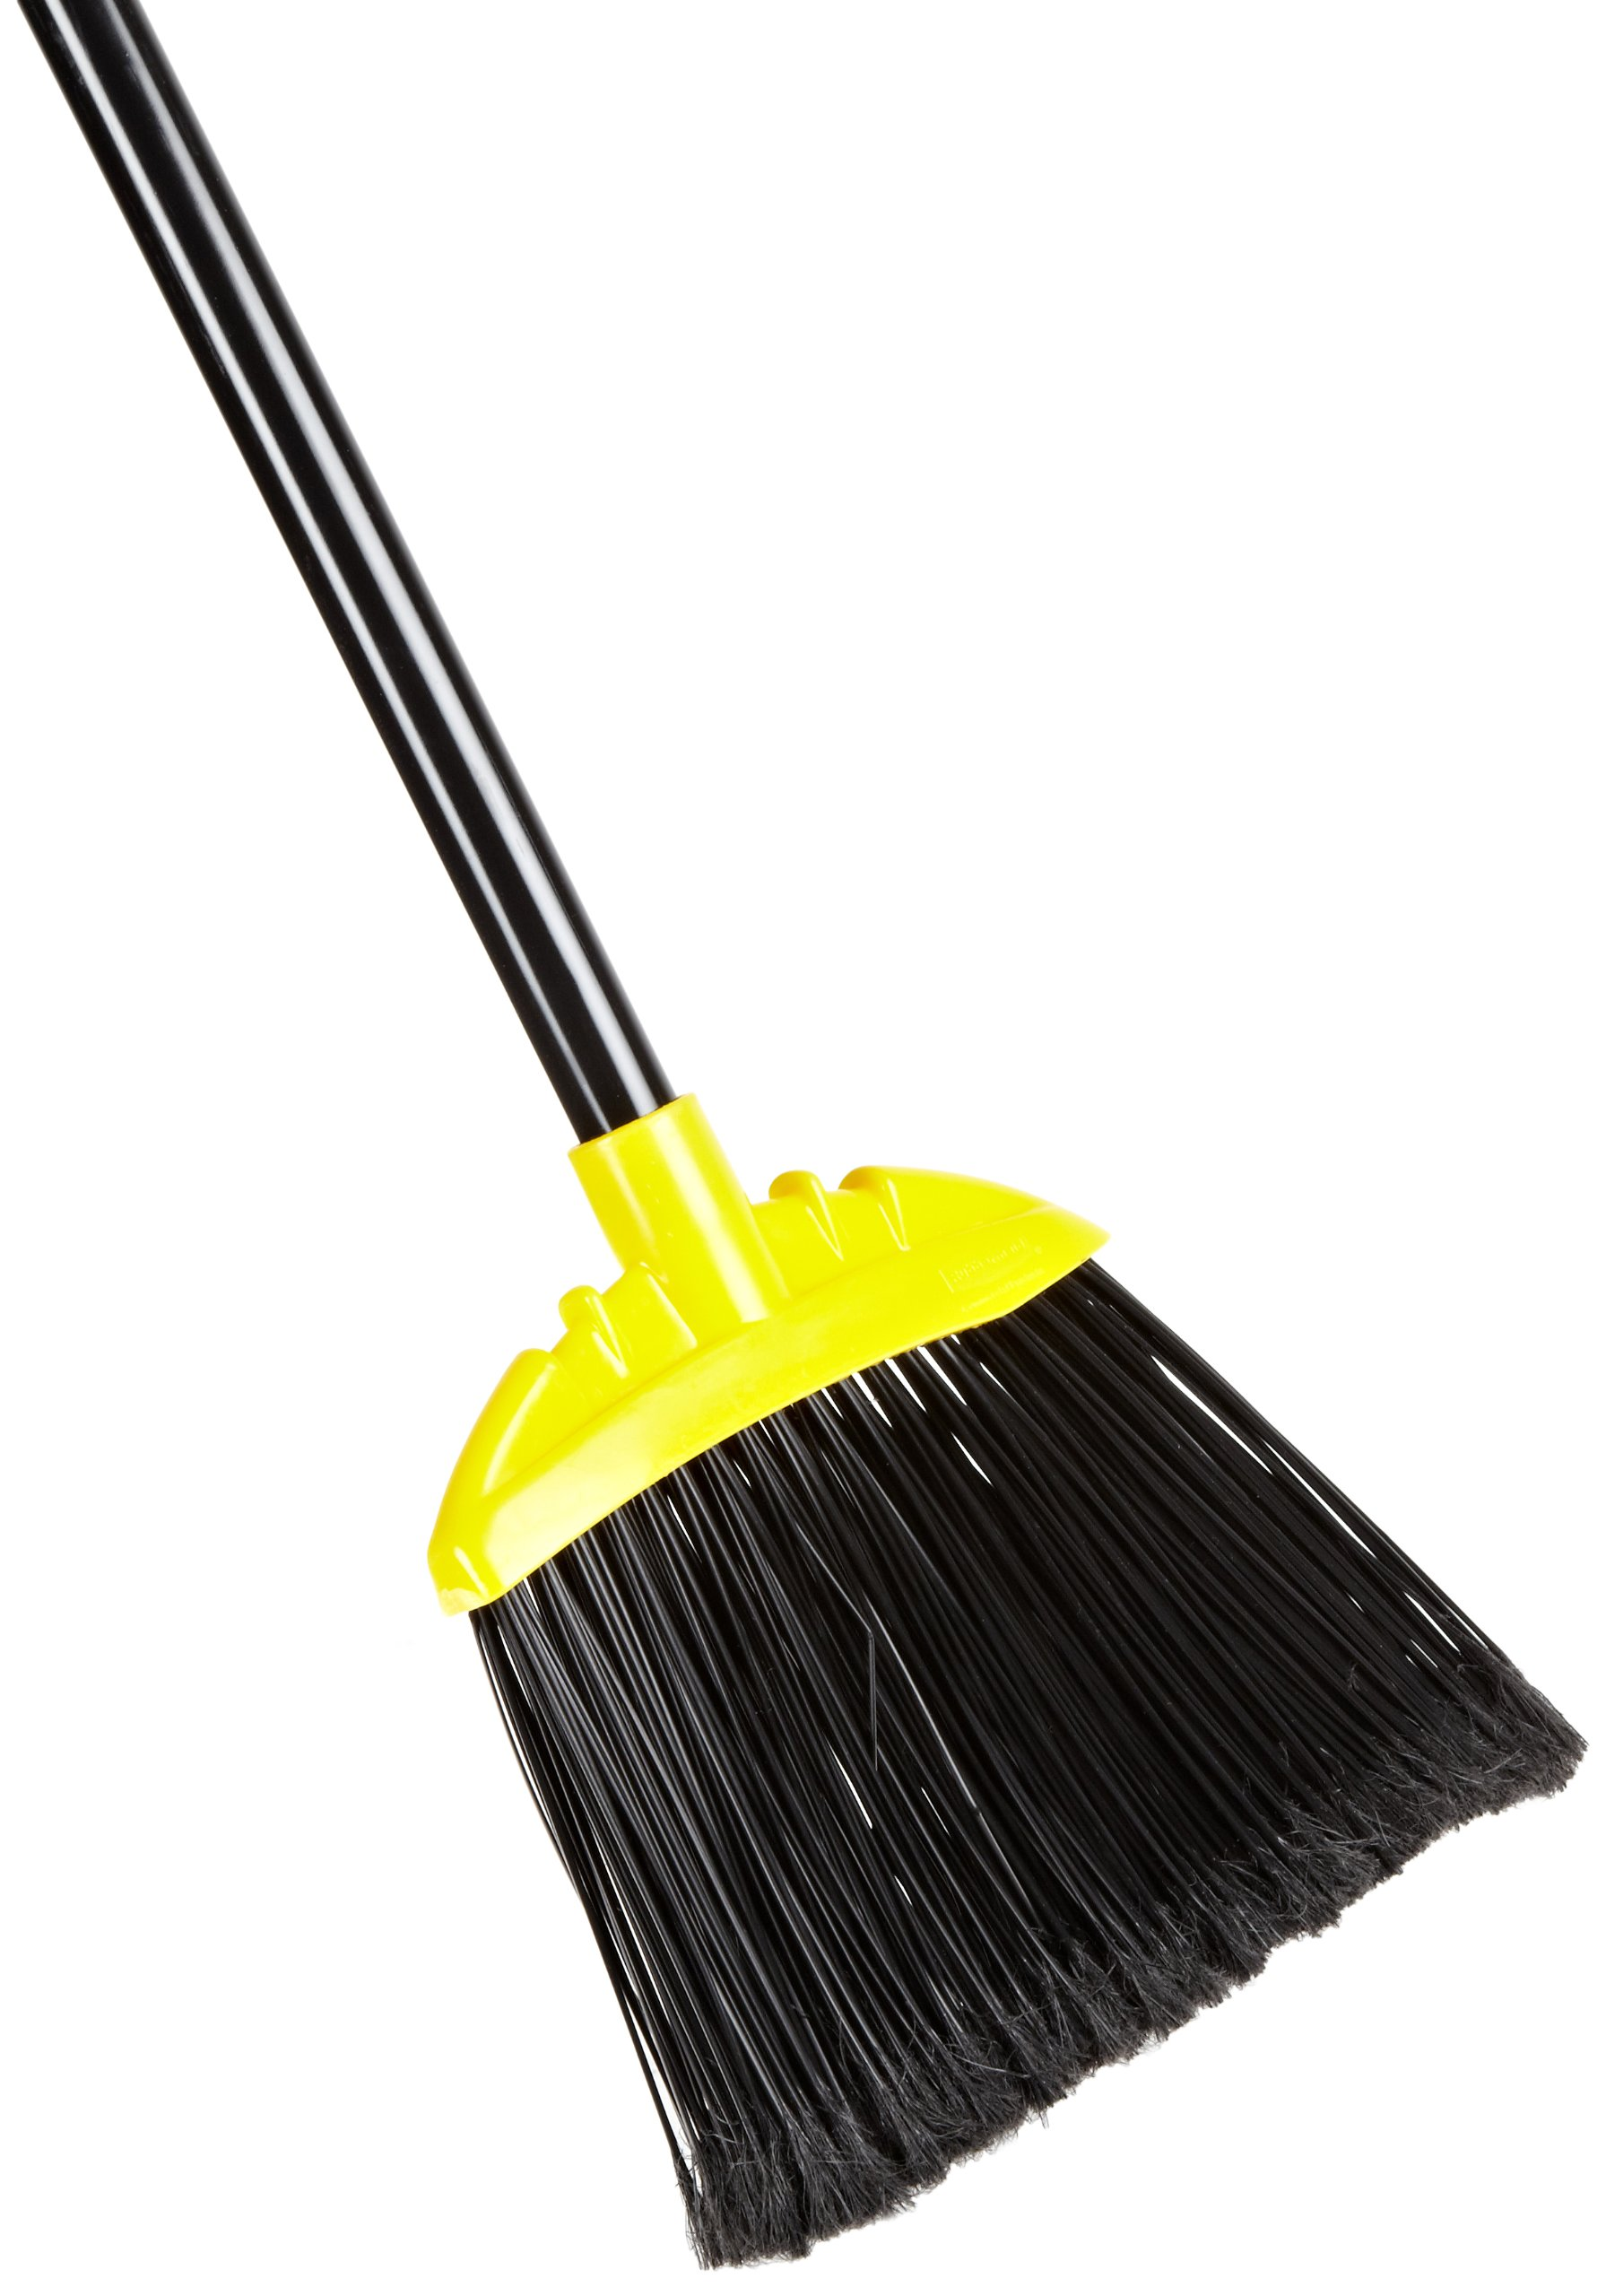 Rubbermaid Commercial FG638906BLA Jumbo Smooth Sweep Polypropylene Angle Broom with Metal Handle, Black by Rubbermaid Commercial Products